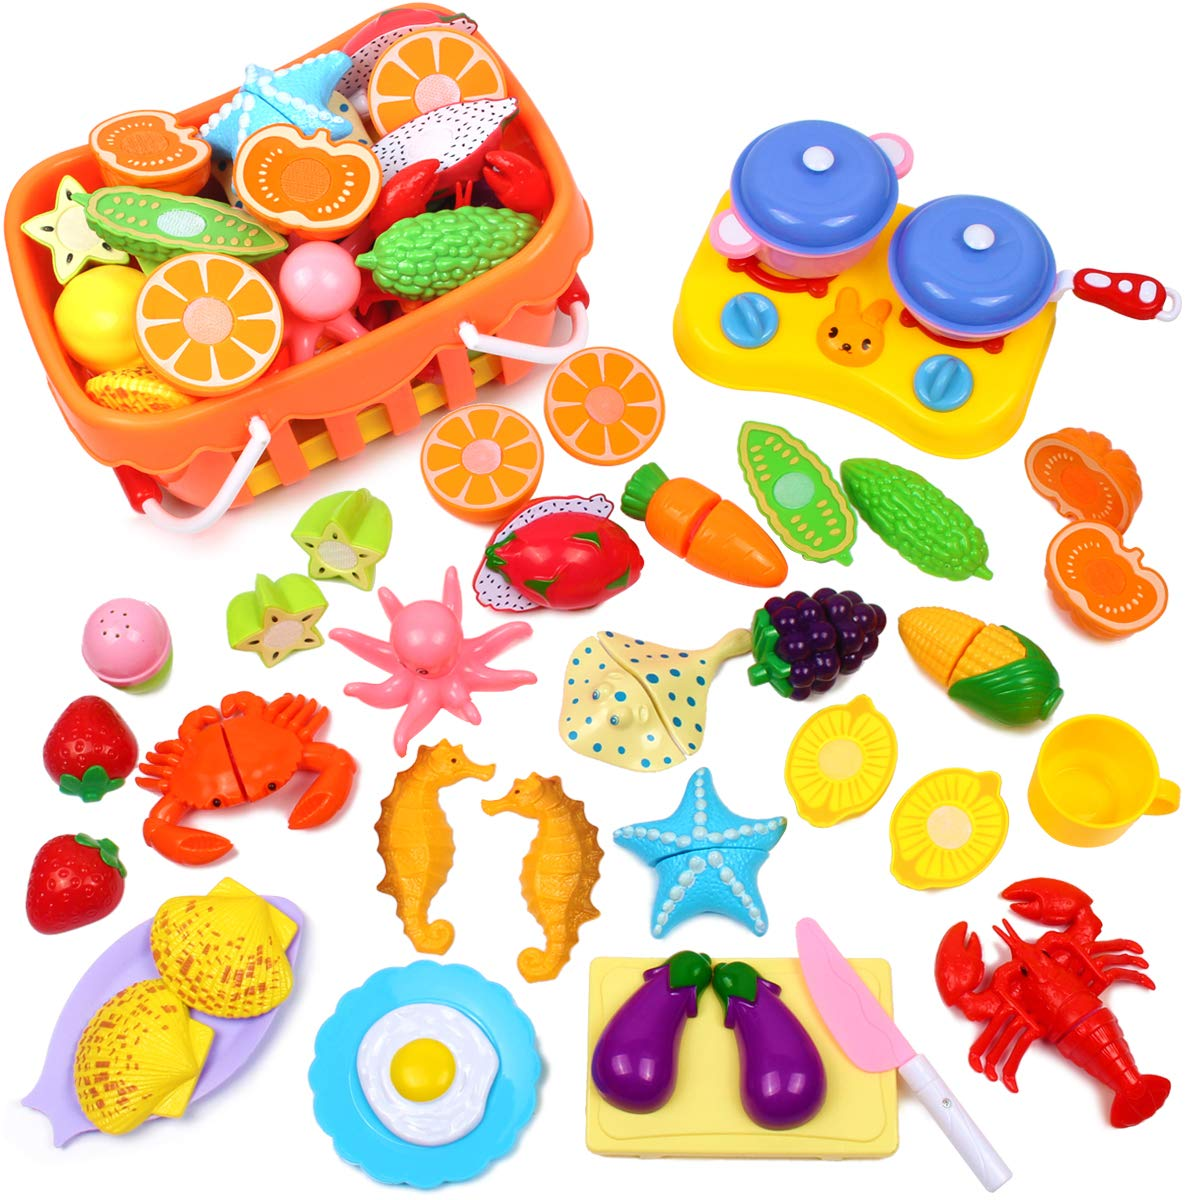 Details about 20 Piece Kids Pretend Food Play Kitchen Toys , Plastic Food  Fruit Cutting Set